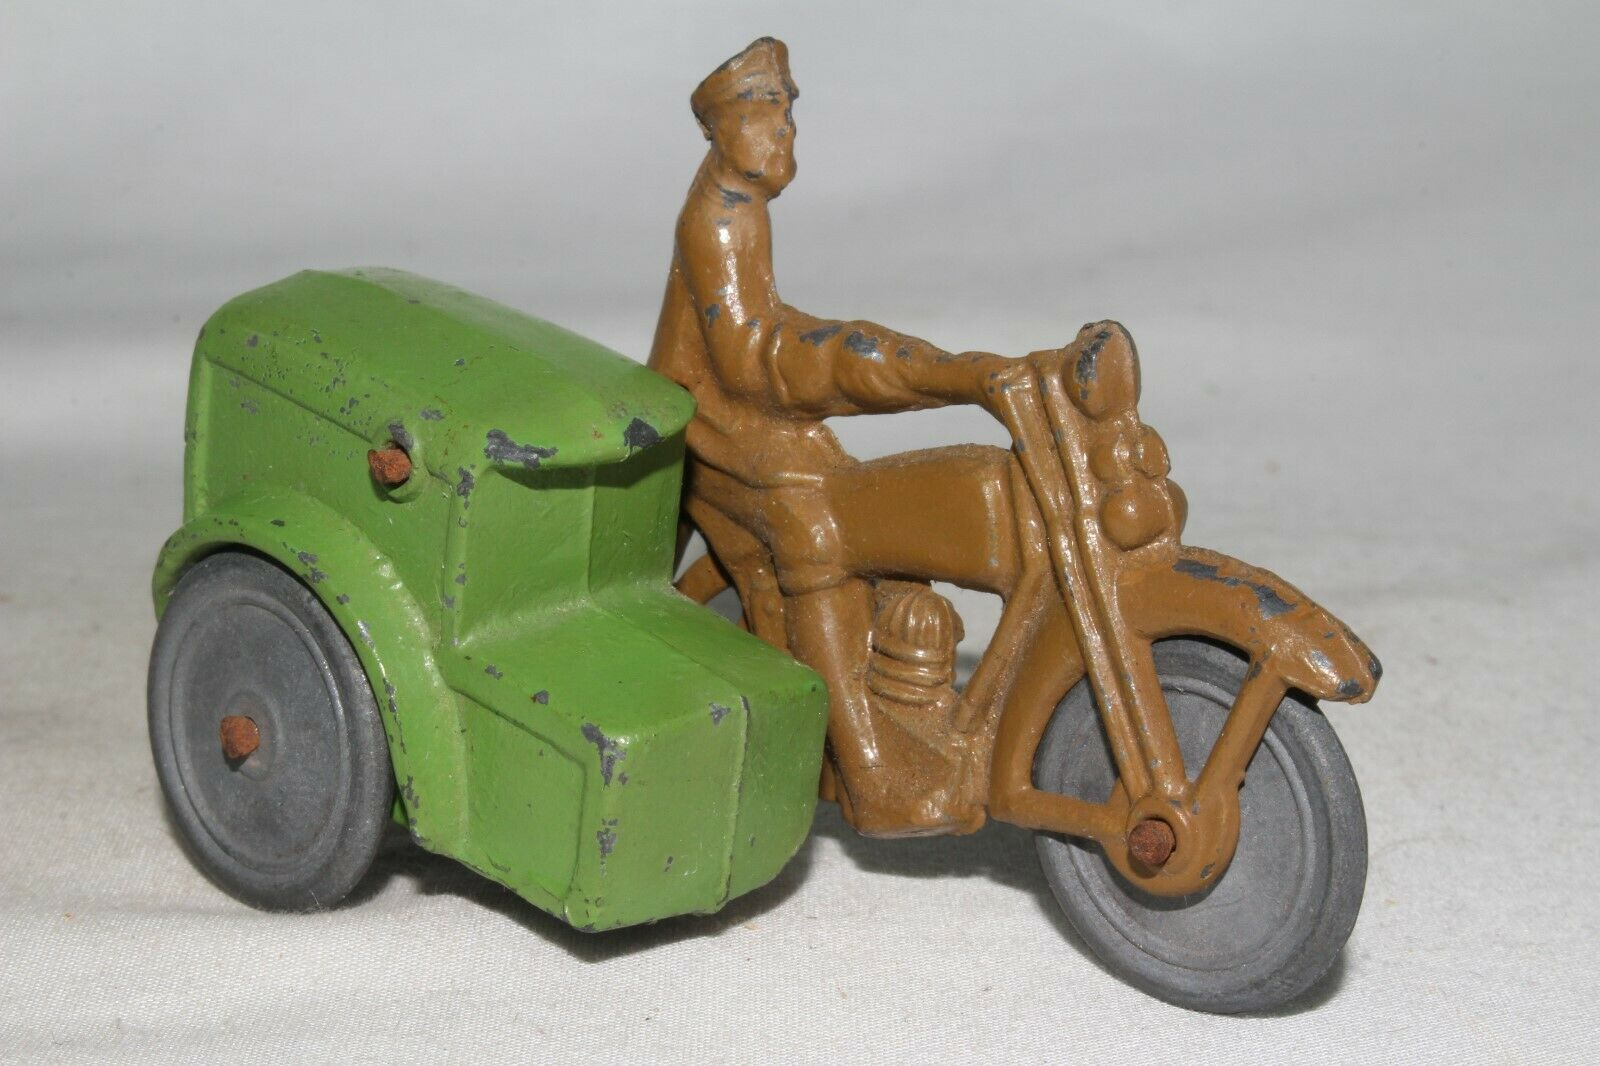 1930's Barclay Parcel Post Delivery Motorcycle, Nice Original